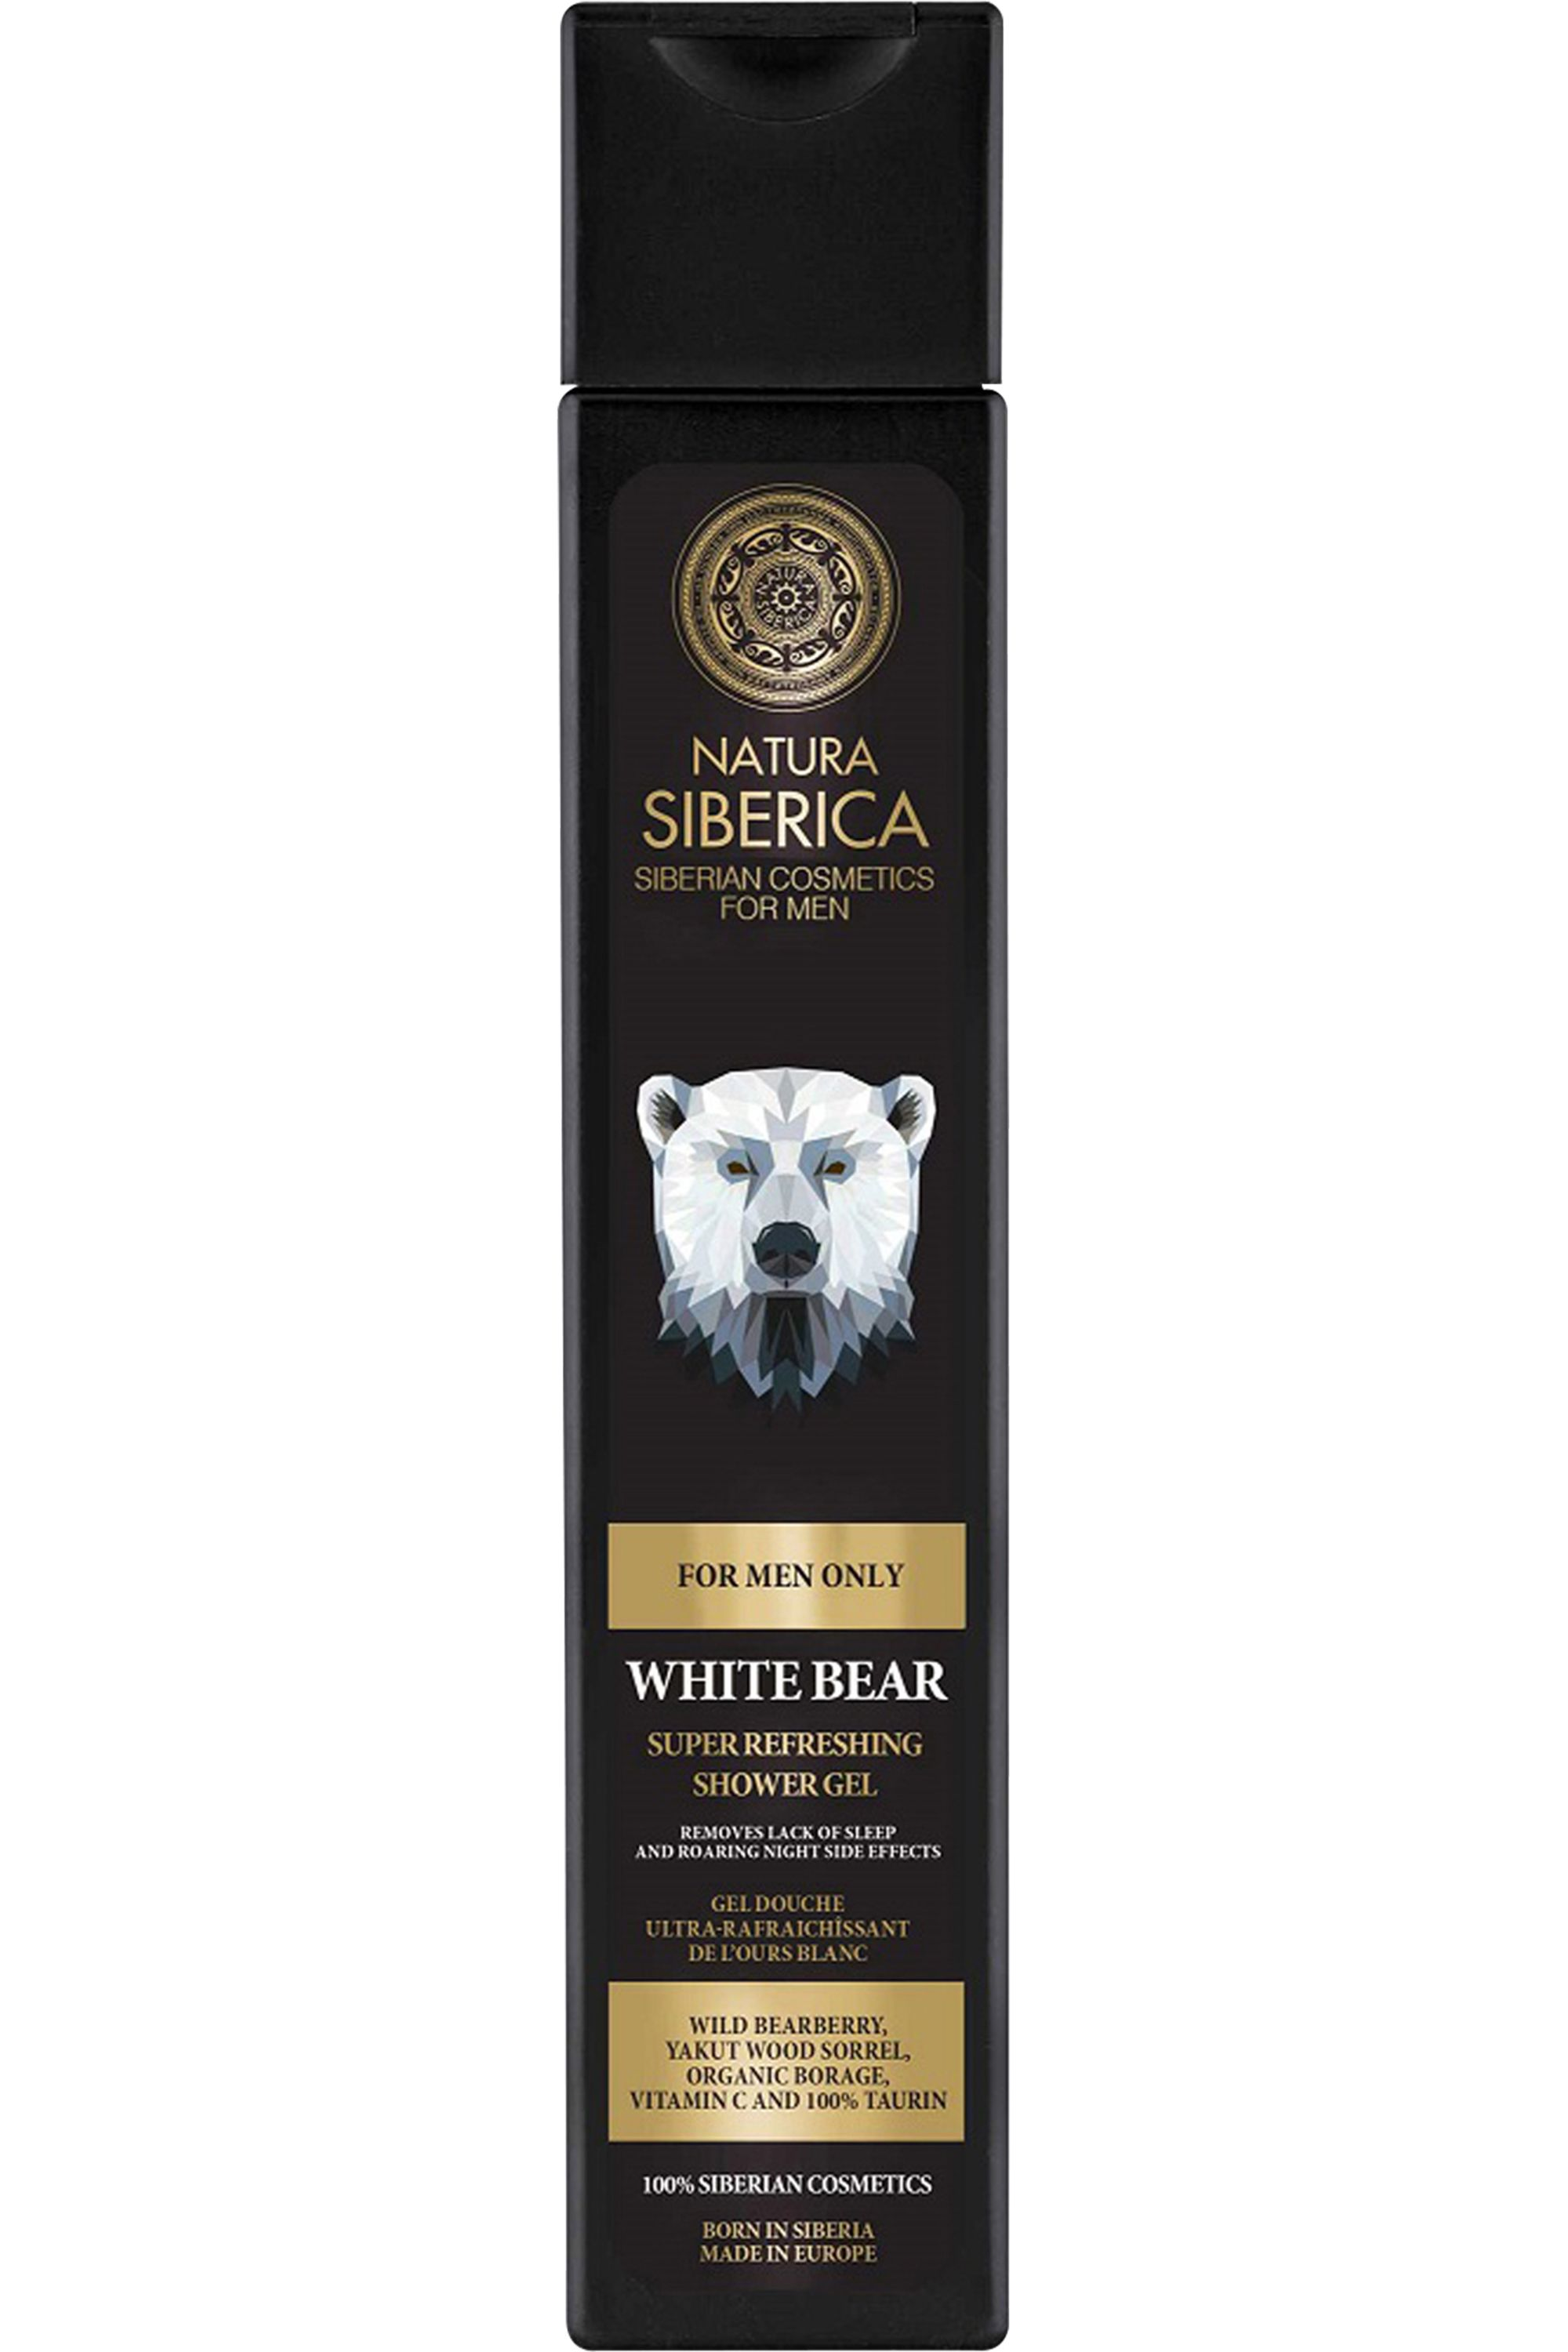 Blissim : Natura Siberica - Gel Douche L'Ours Blanc Ultra-Rafraichissant - Gel Douche L'Ours Blanc Ultra-Rafraichissant